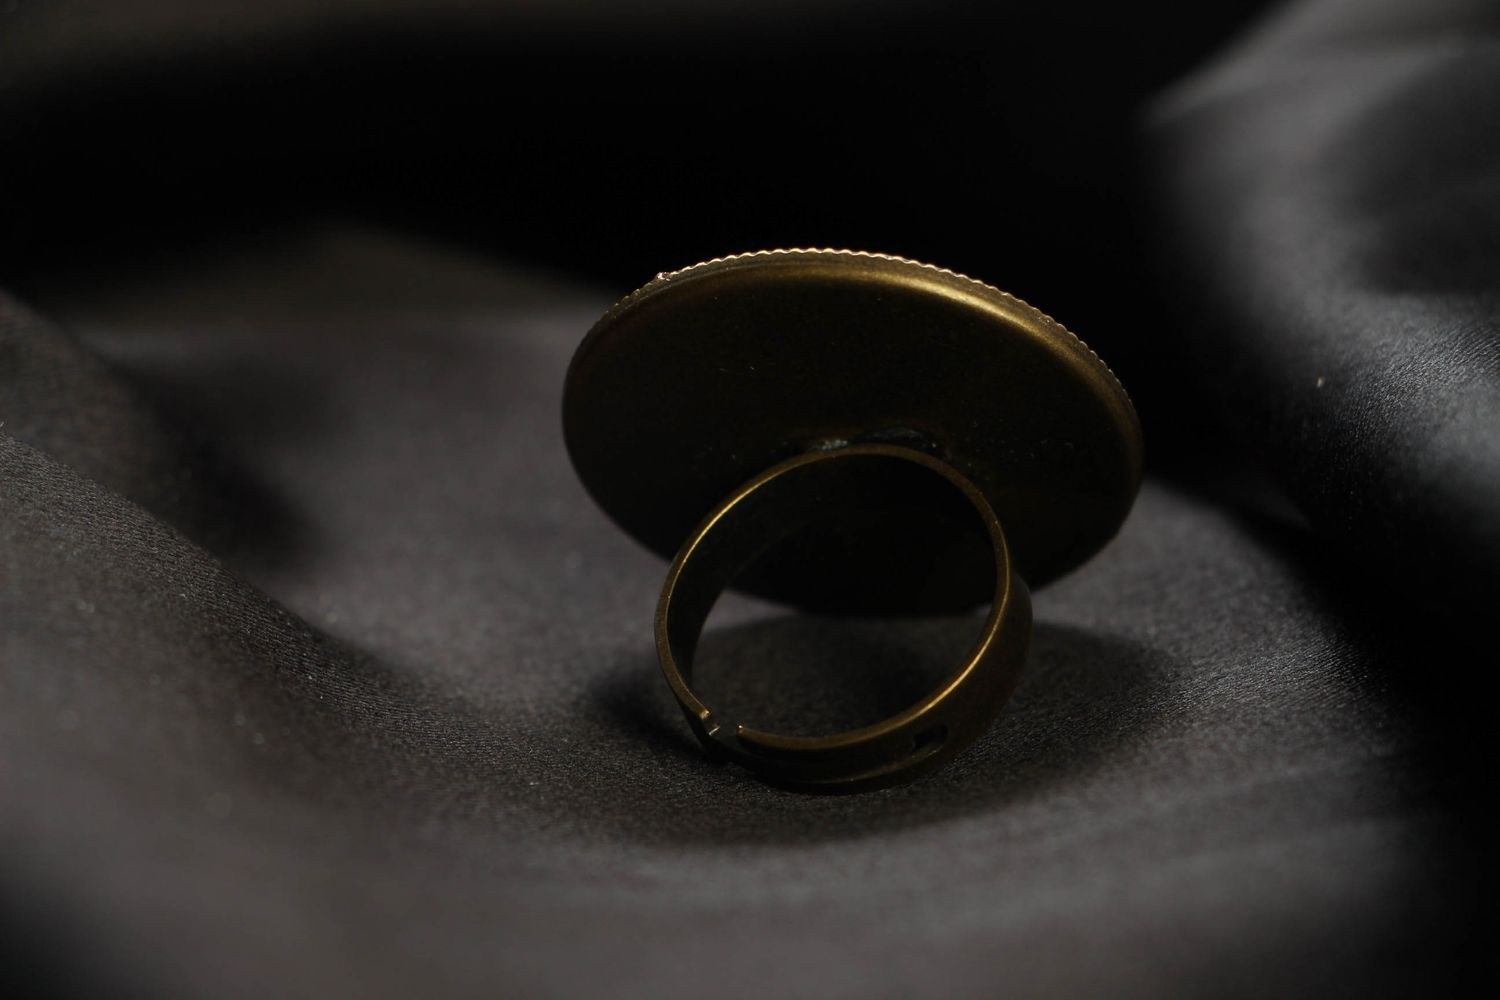 Large metal ring in cyberpunk style photo 3